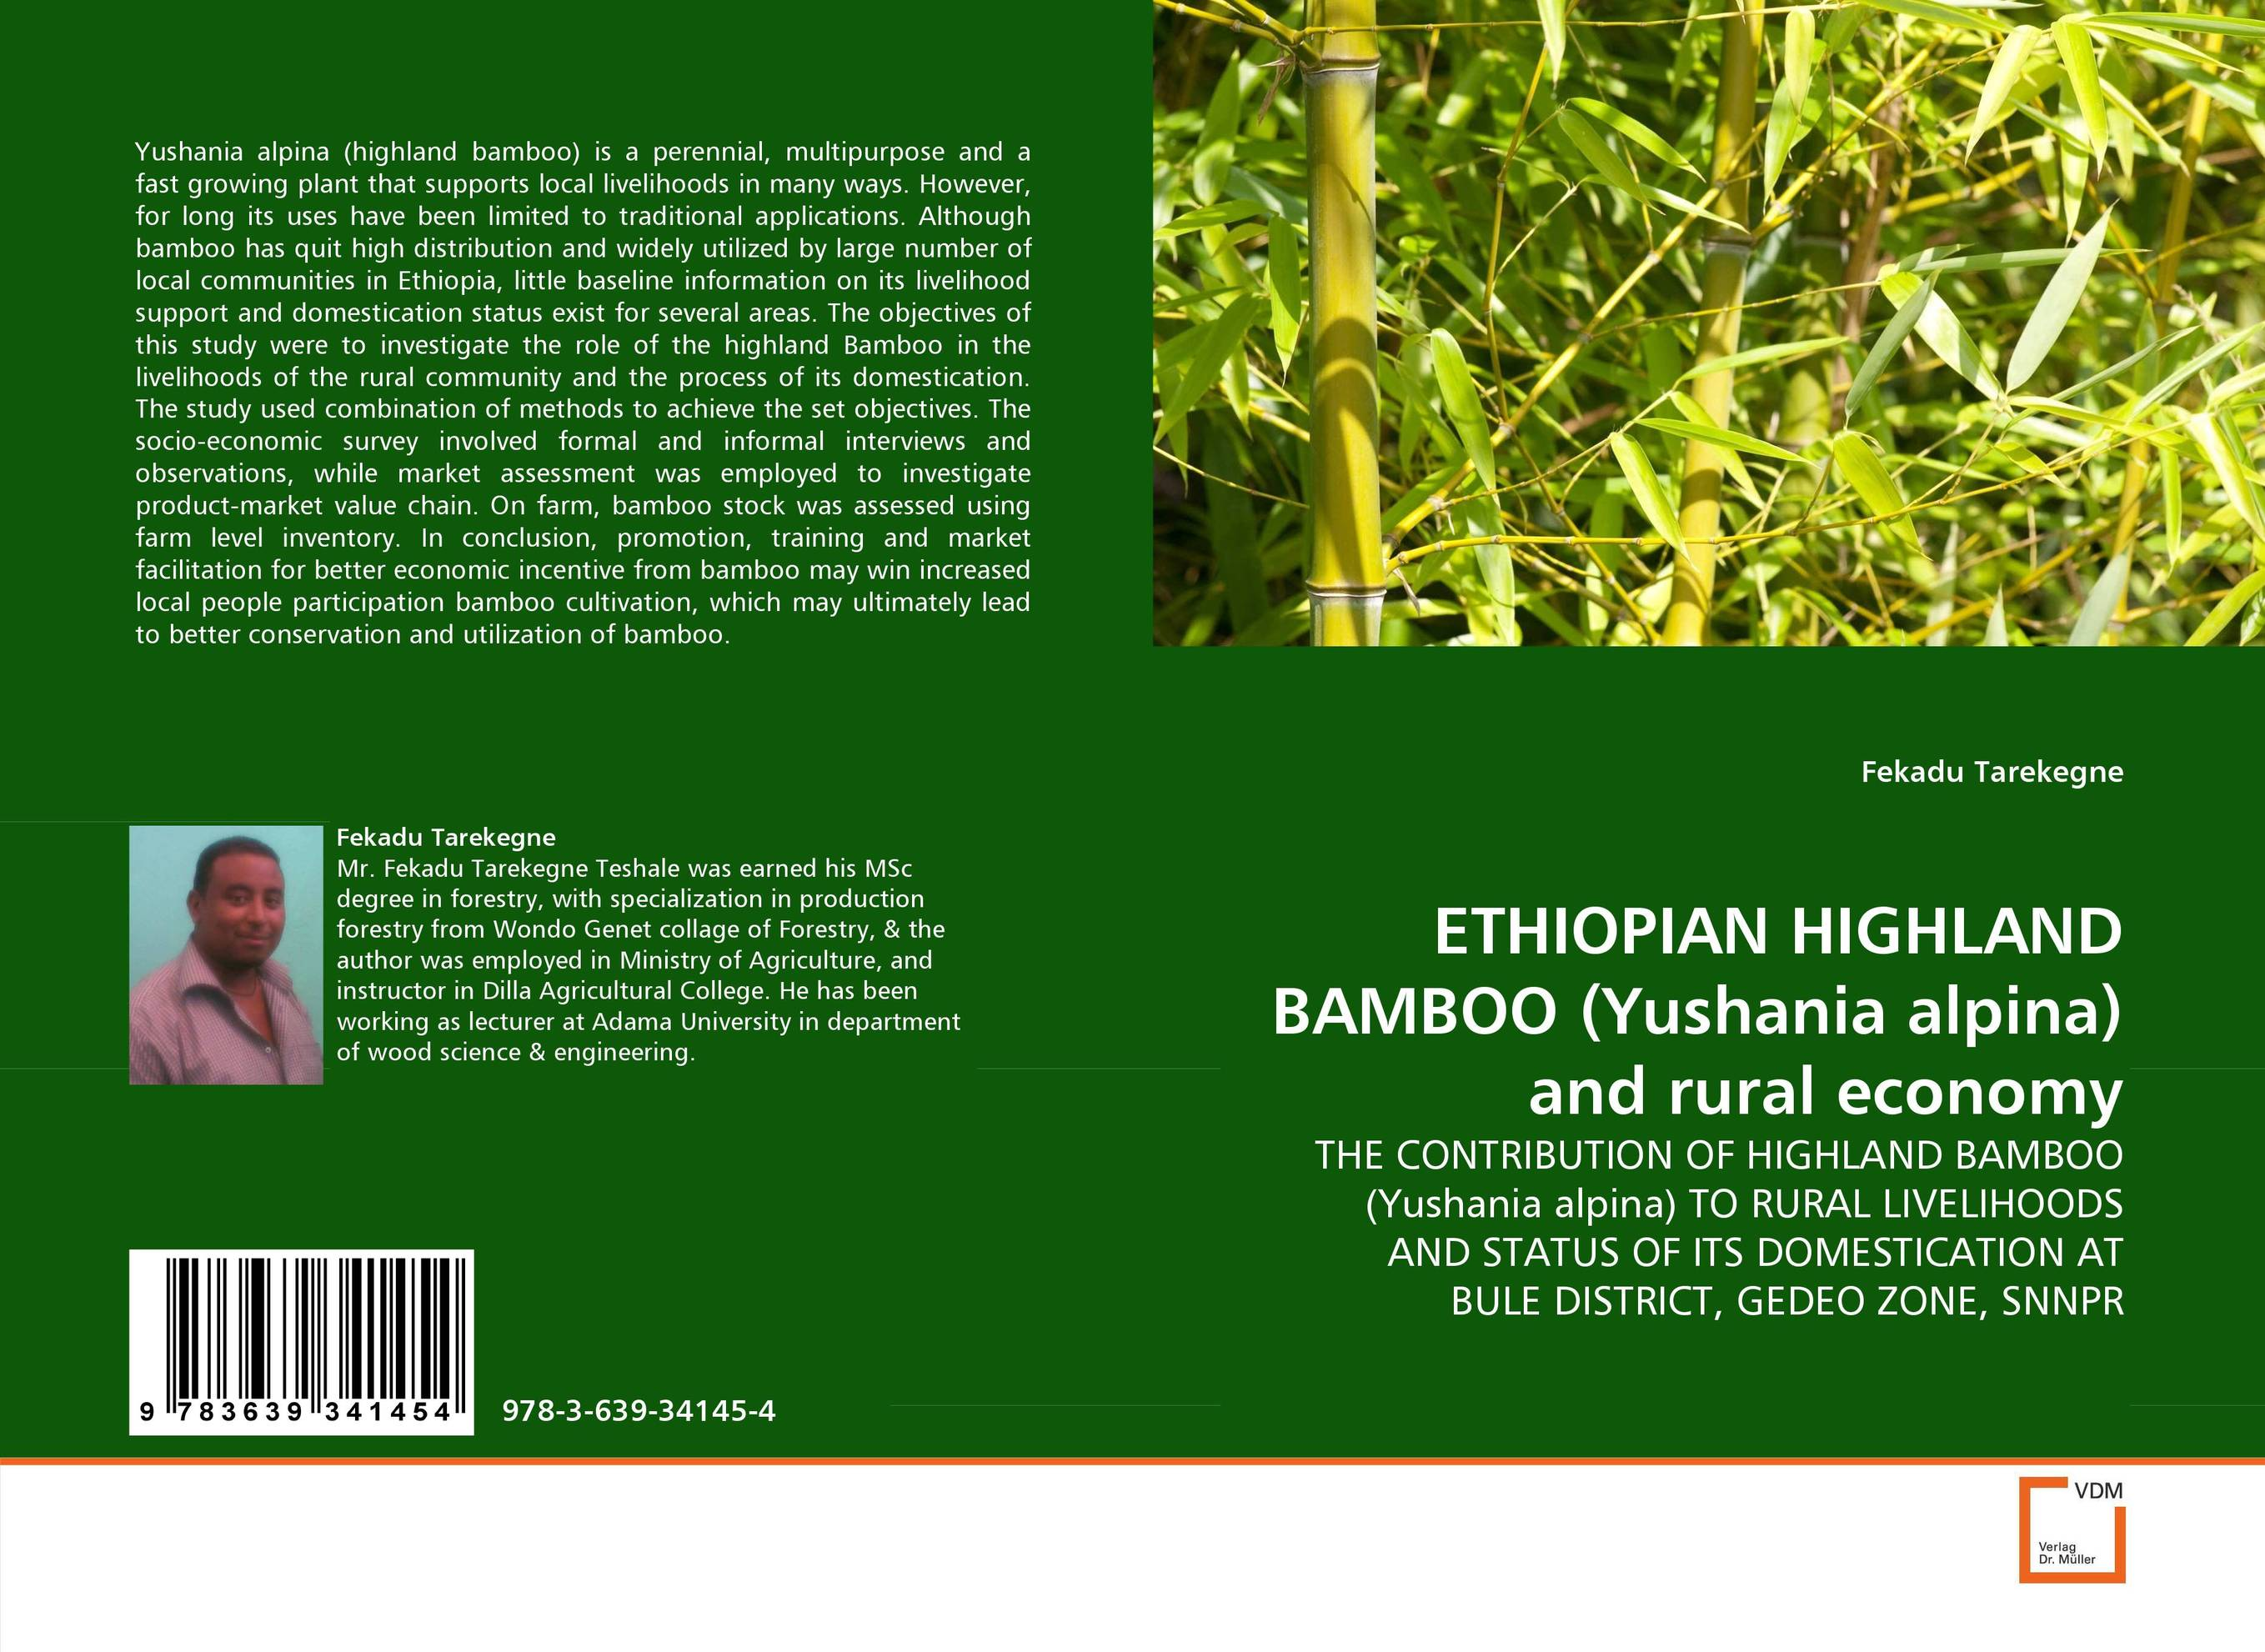 ETHIOPIAN HIGHLAND BAMBOO (Yushania alpina) and rural economy the highland fling murders